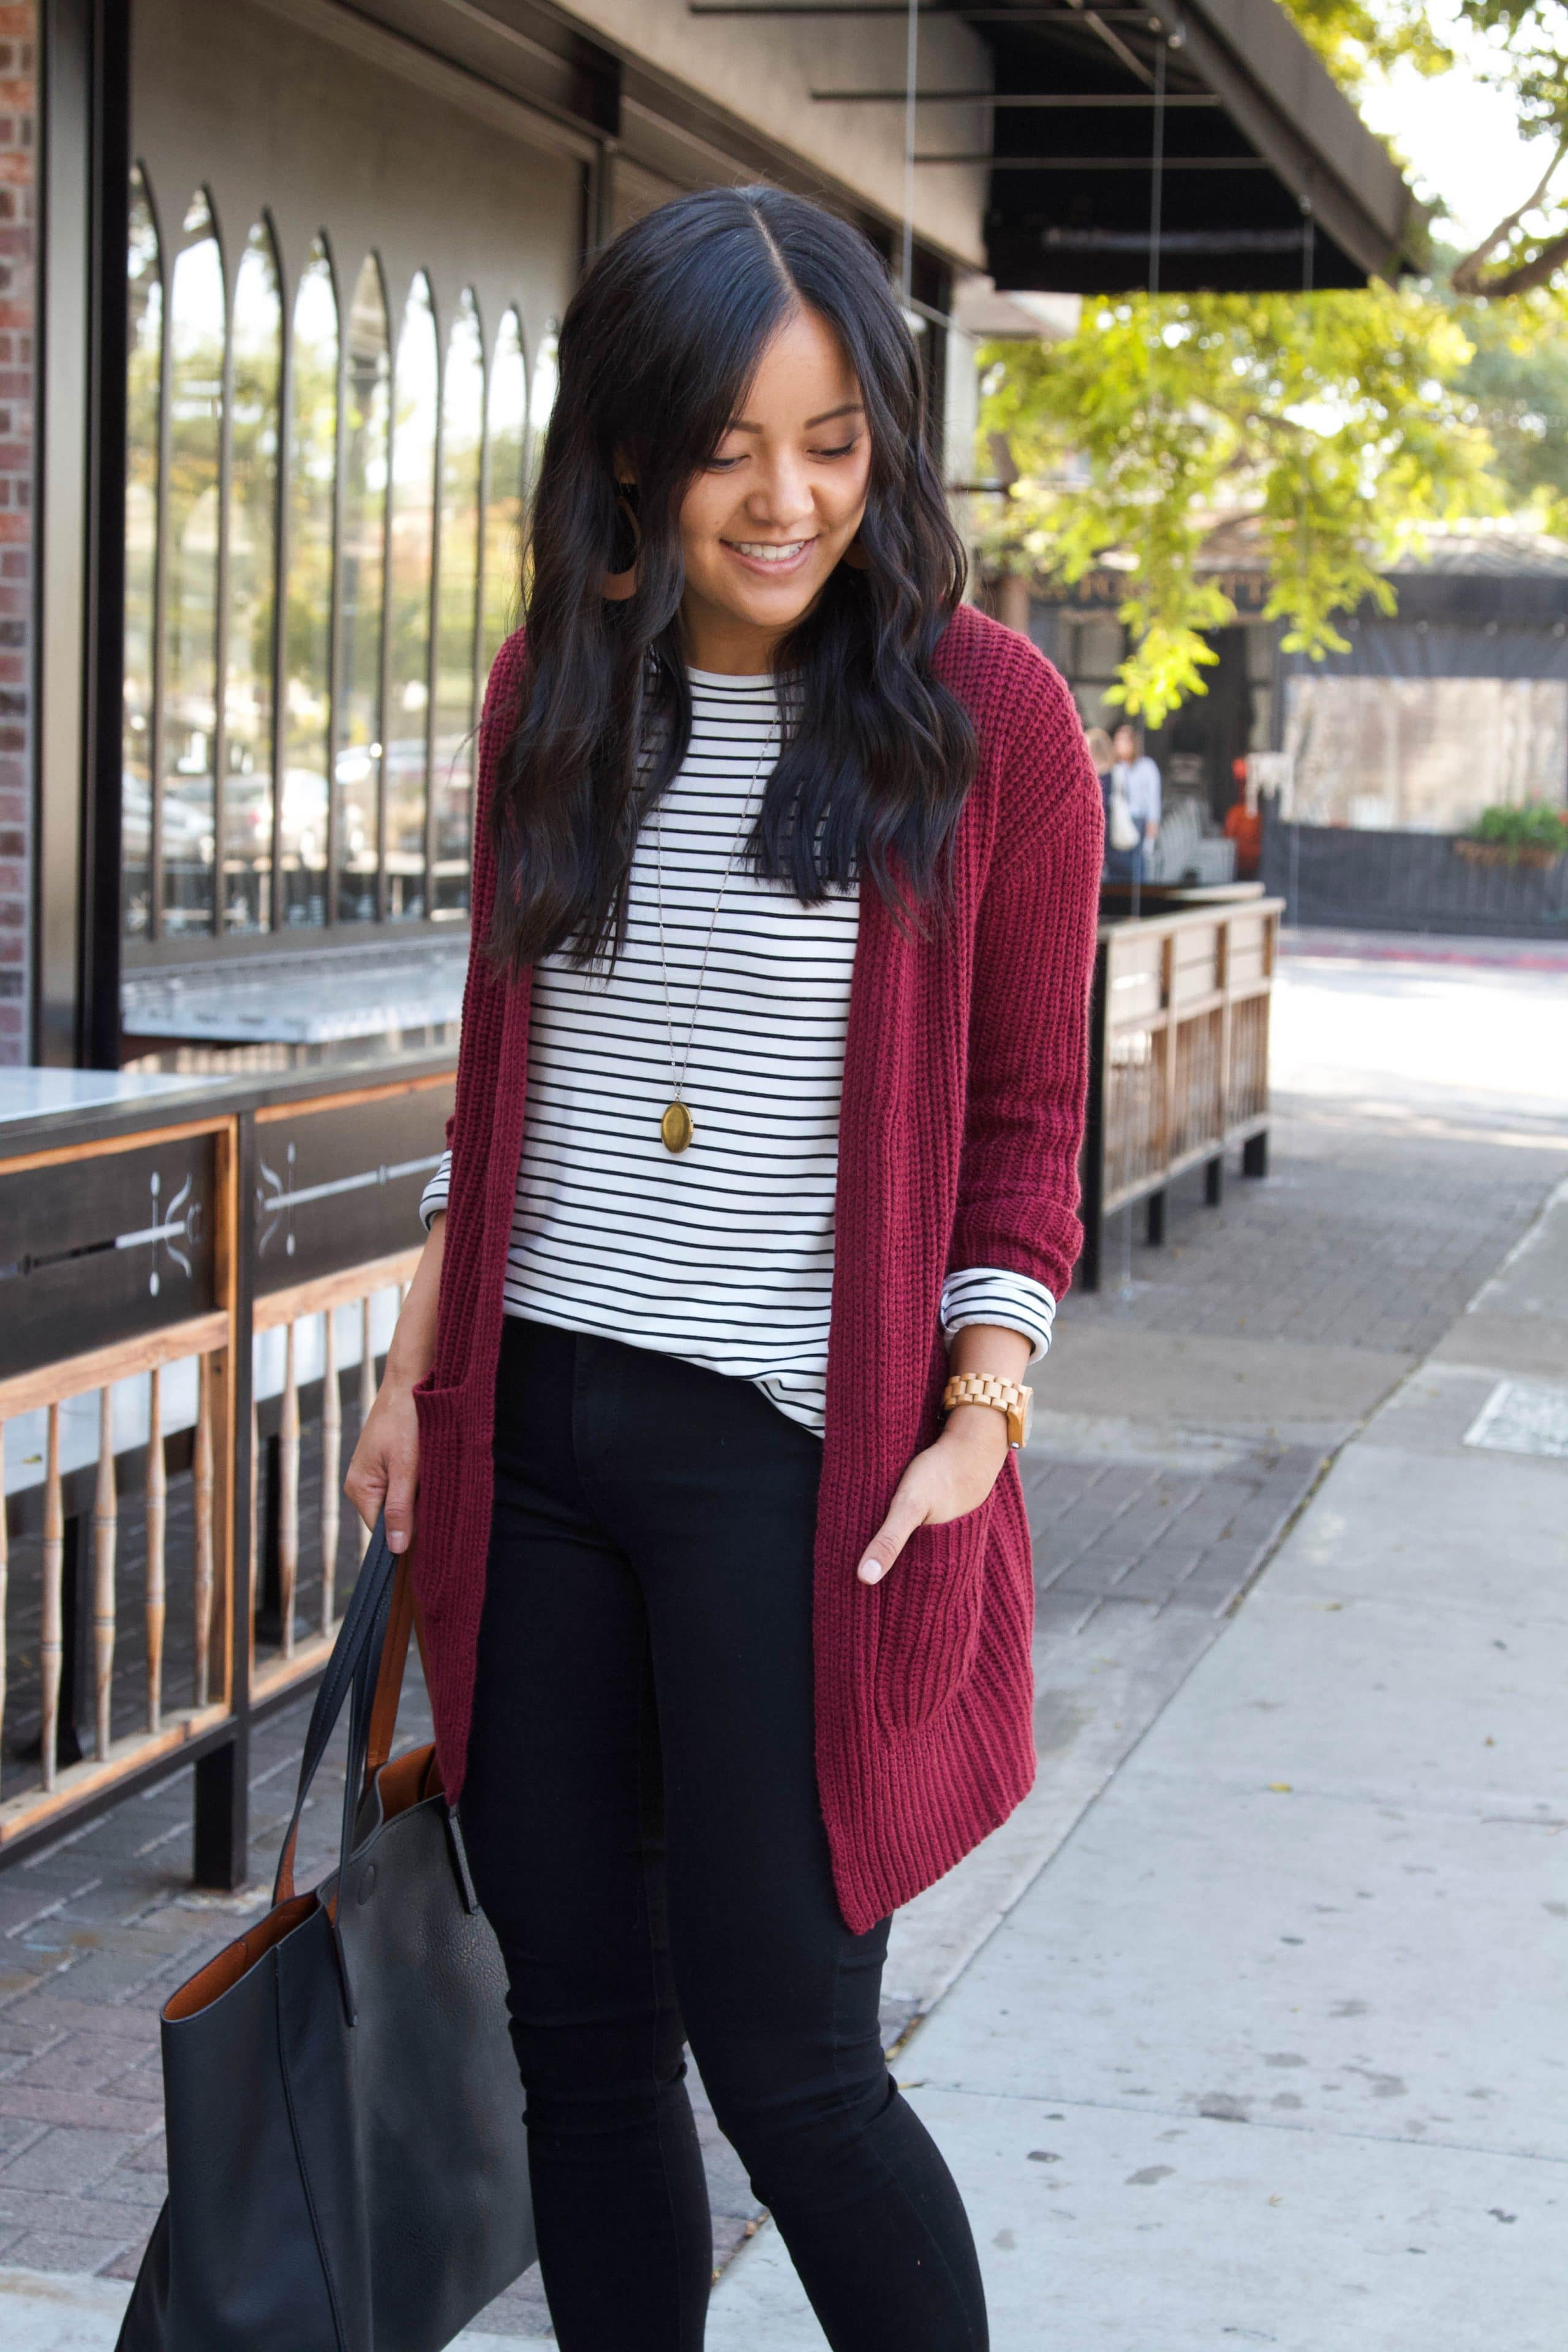 maroon cardigan + black and white striped shirt + black skinny pants + taupe booties + black tote + business casual outfit